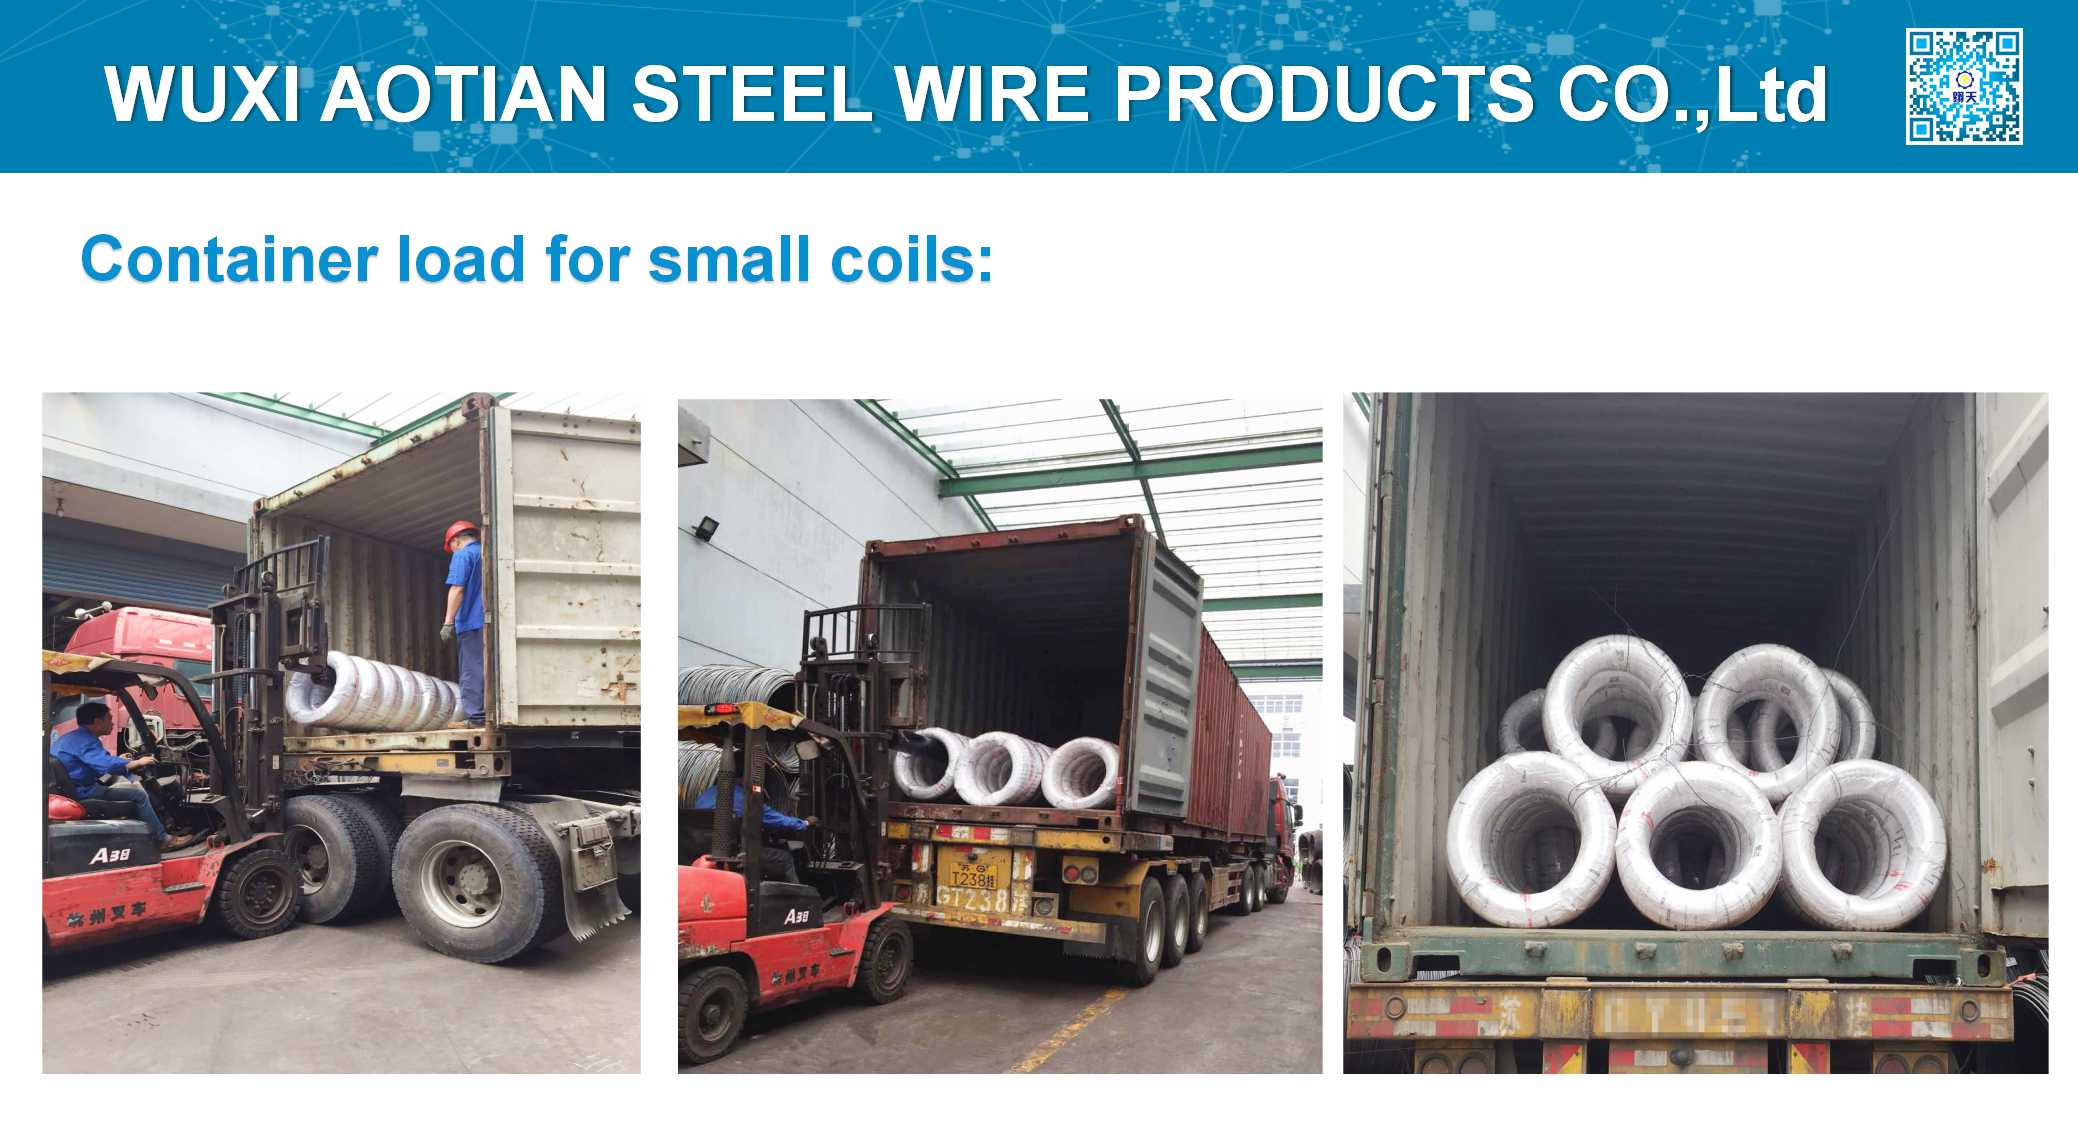 Container load for small coils